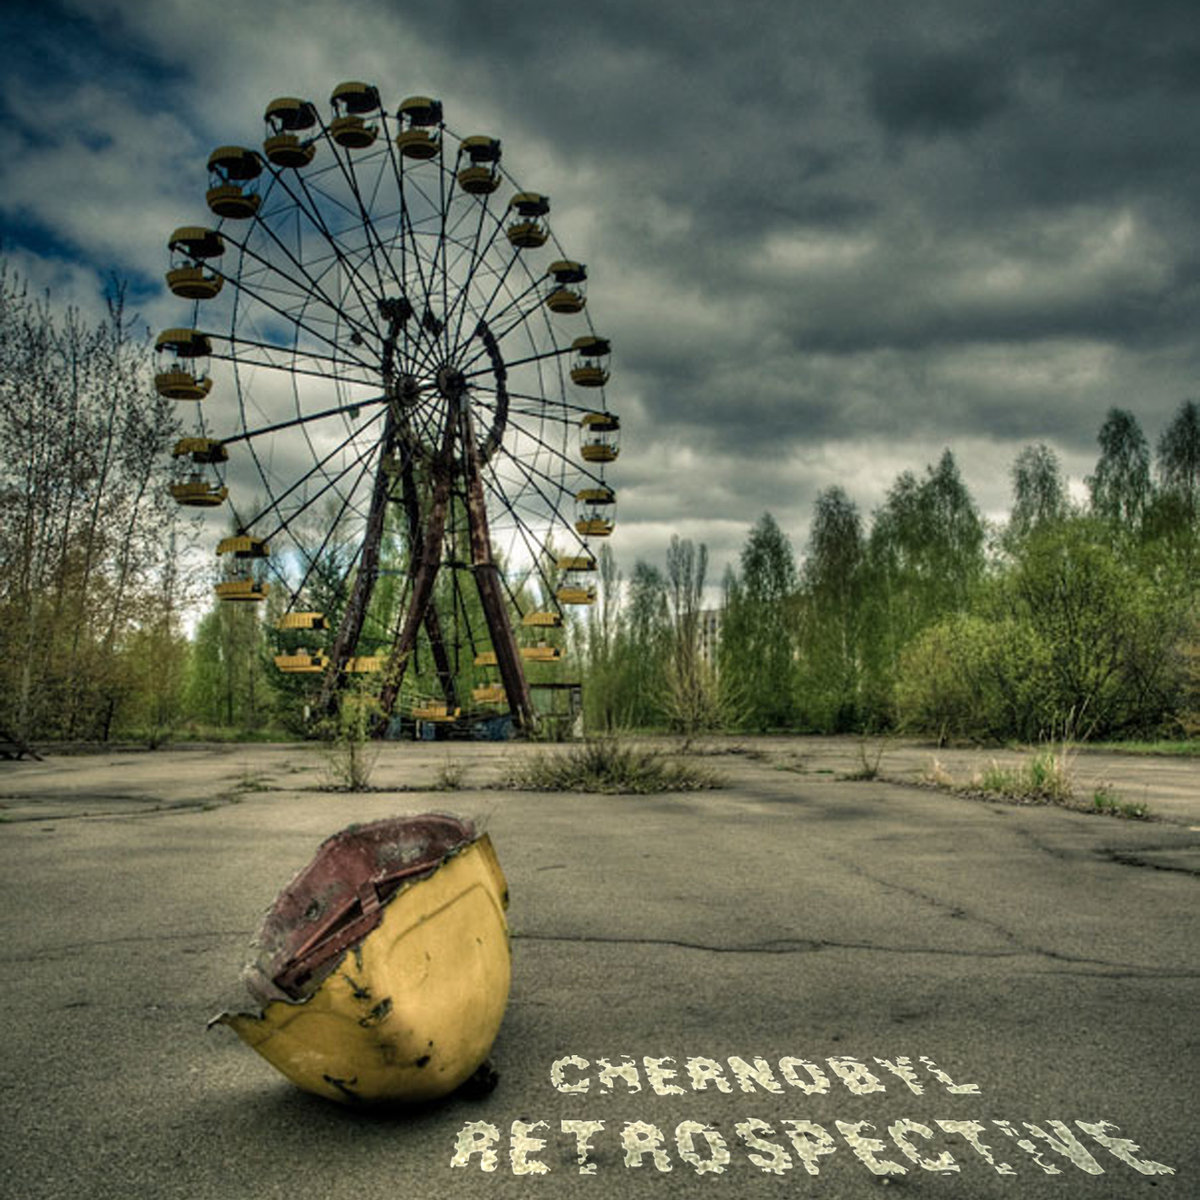 Various Artists - Chernobyl Retrospective @ 'Various Artists - Chernobyl Retrospective' album (electronic, ambient)